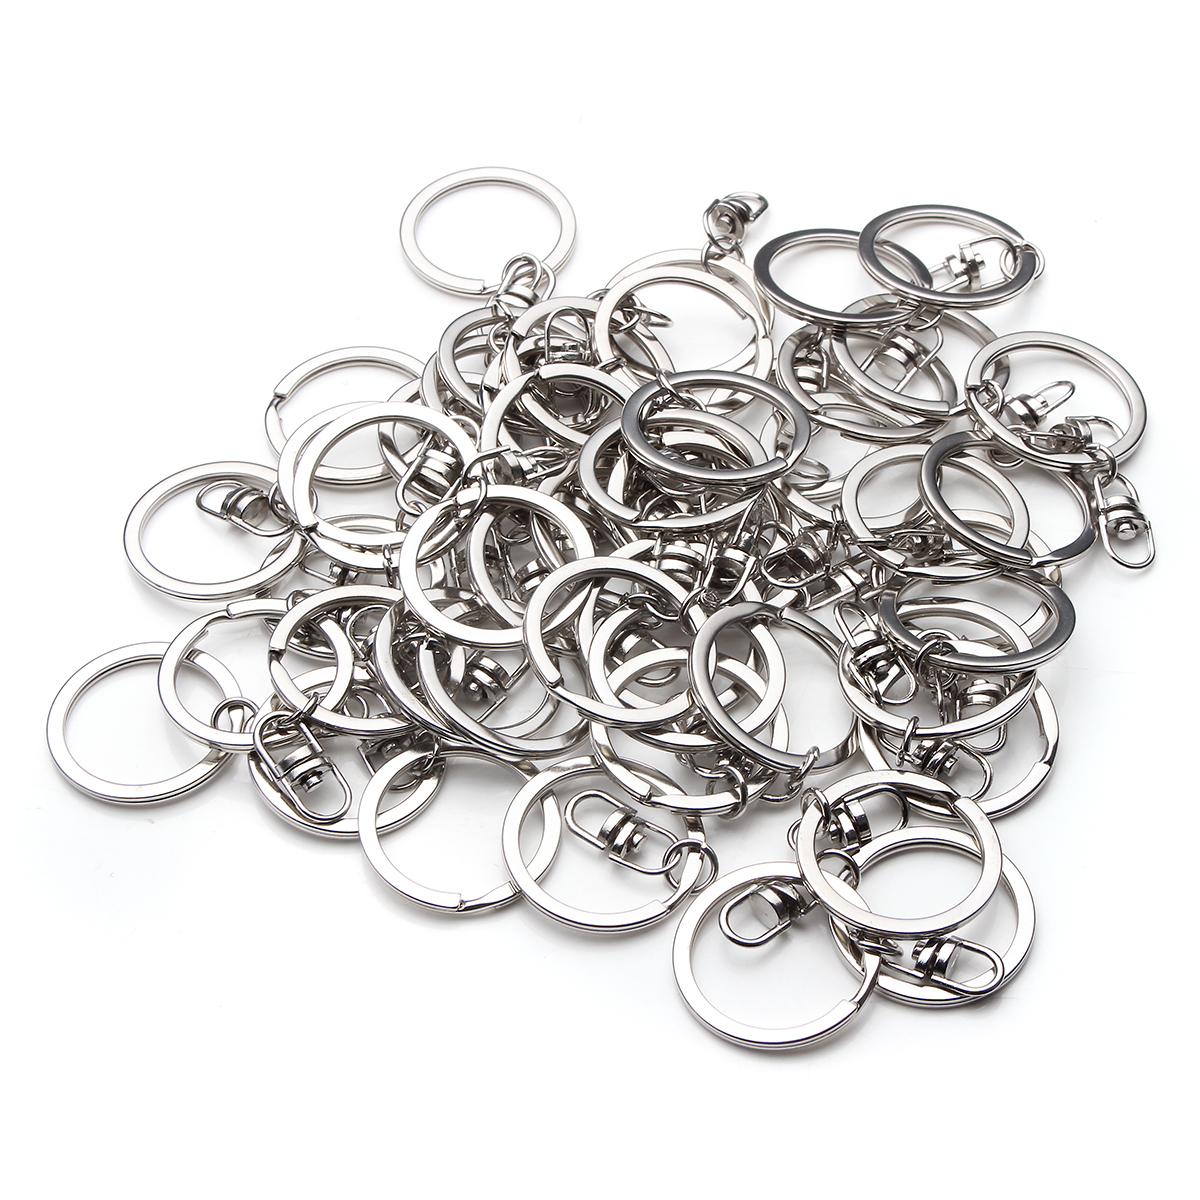 50Pcs Metal Silver Tone Key Rings Keychain Keyfob With Swivel Ring For DIY Craft